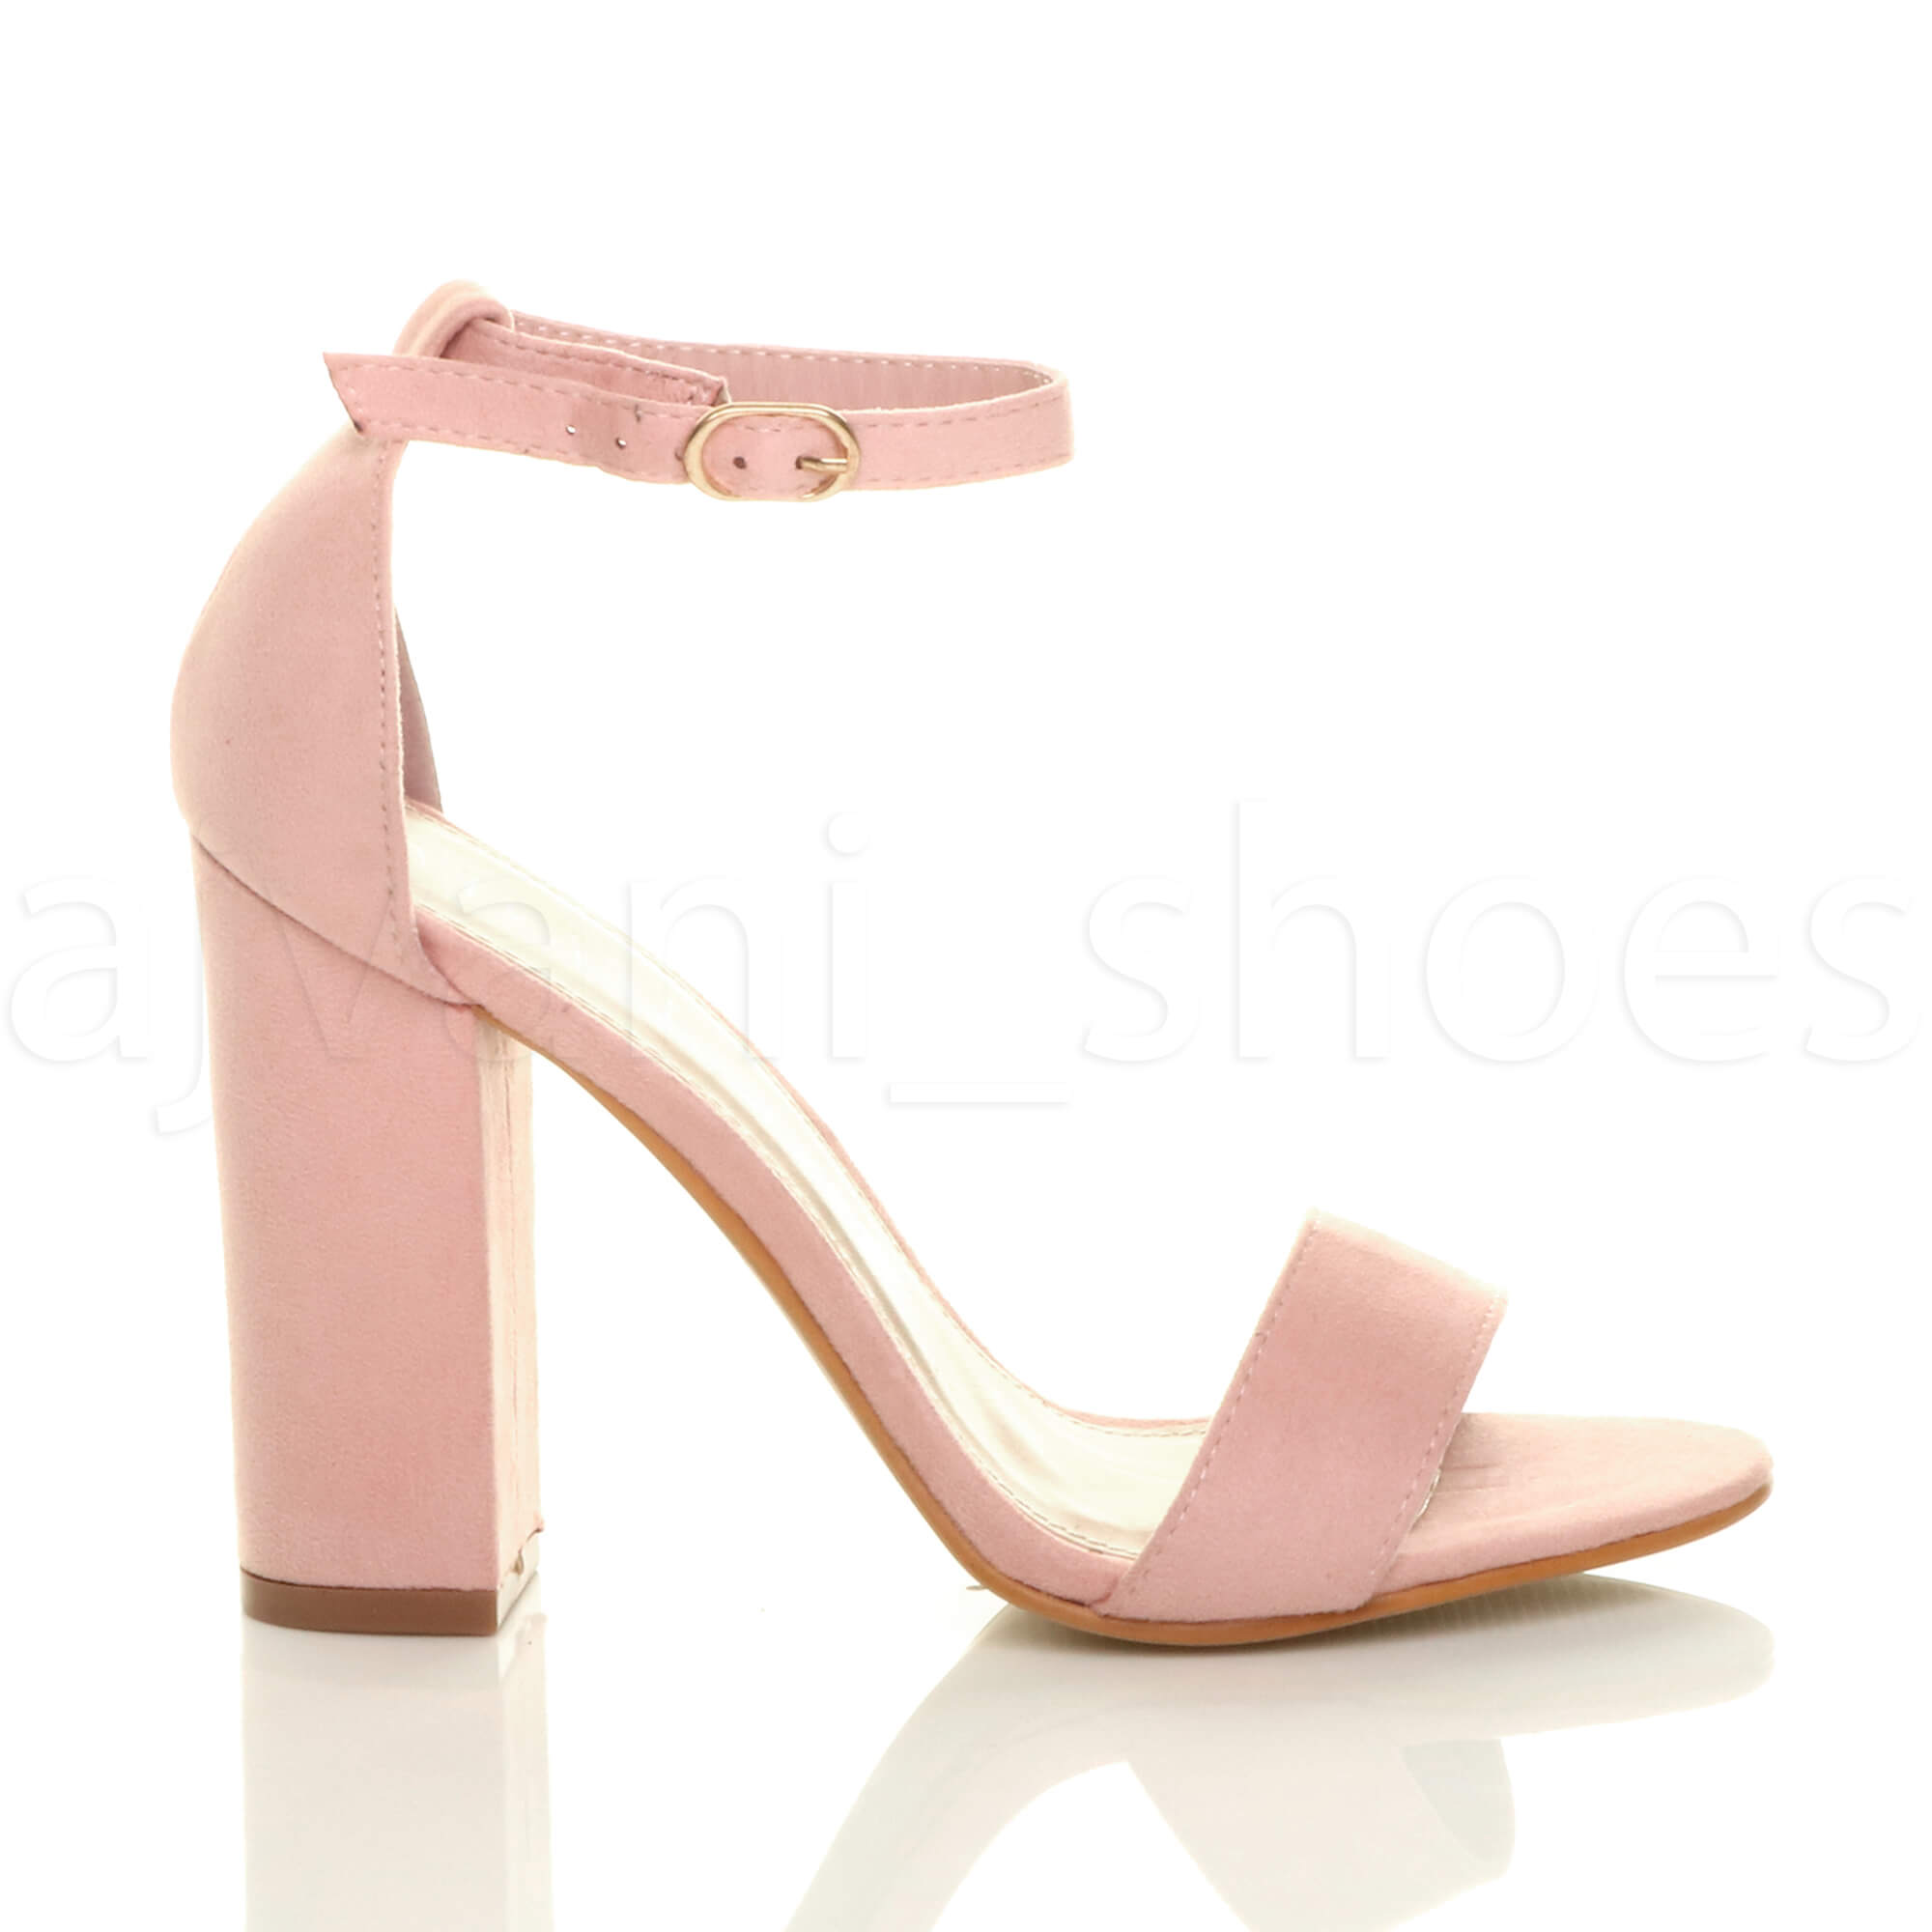 WOMENS-LADIES-BLOCK-HIGH-HEEL-ANKLE-STRAP-PEEP-TOE-STRAPPY-SANDALS-SHOES-SIZE thumbnail 103